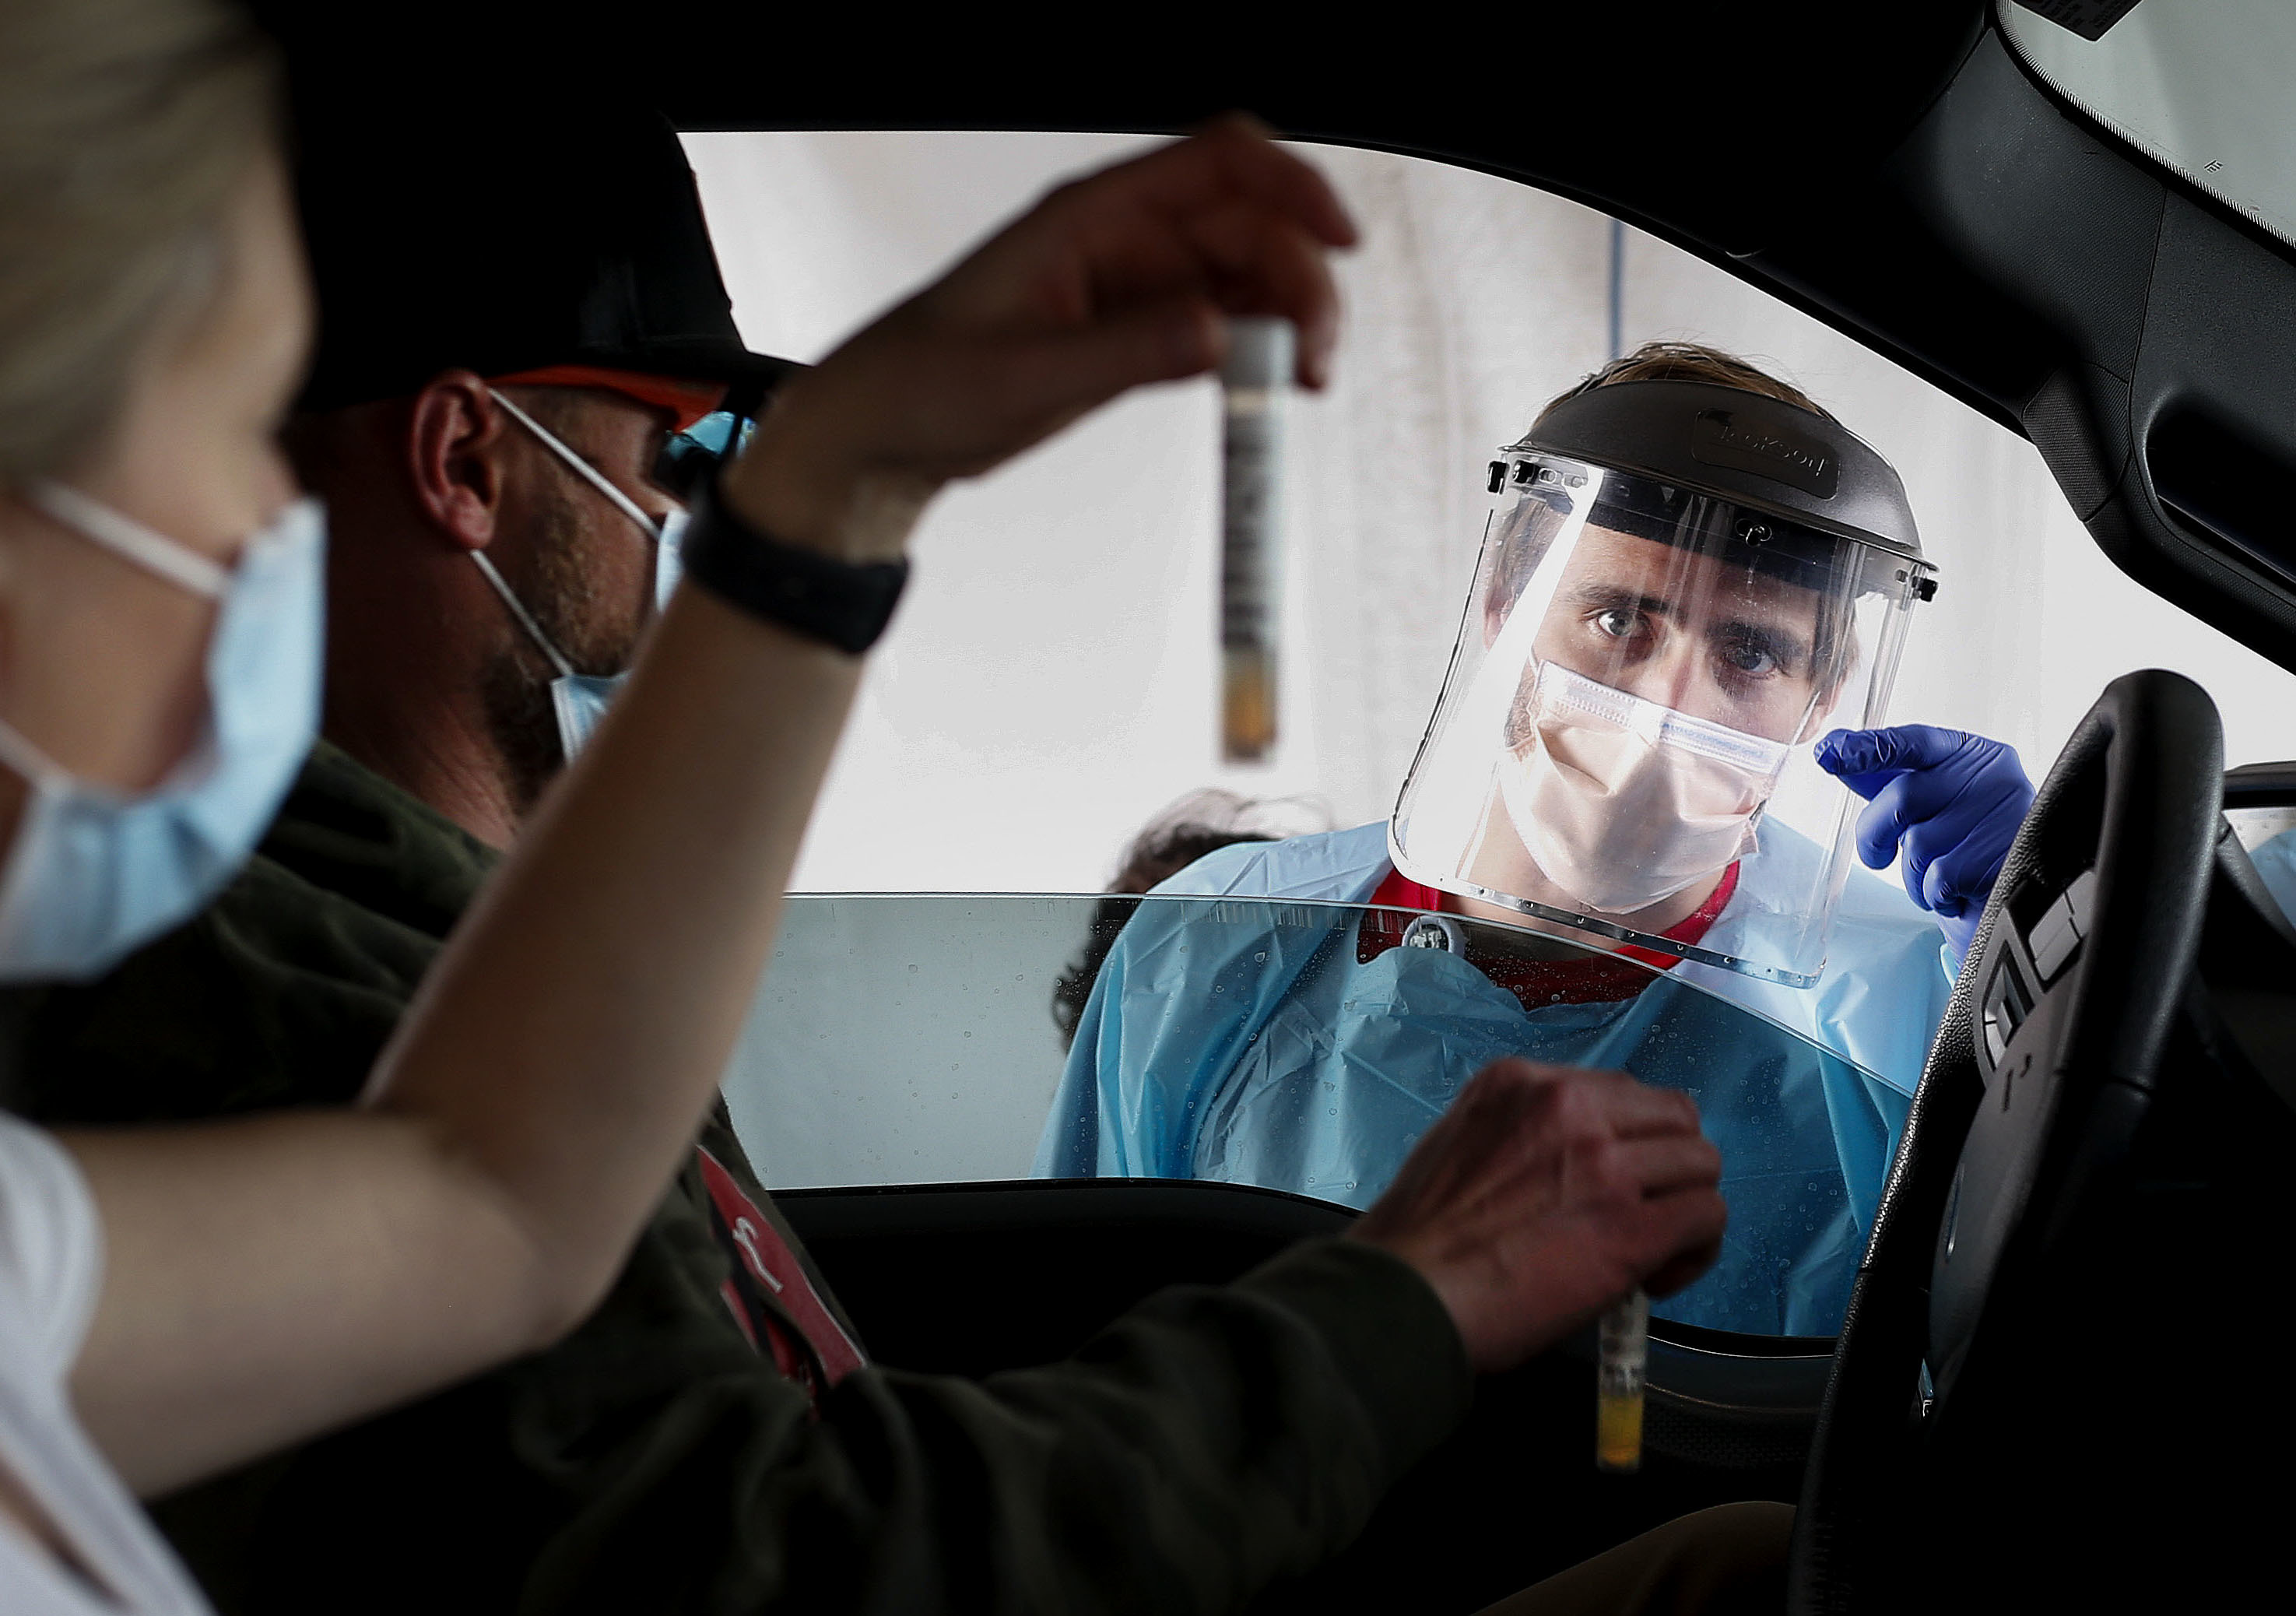 Liz and Sam Rodgers verify their COVID-19 saliva tests to Josh Anderson at a drive-thru test site in South Jordan. The CDC officially says a COVID-19 symptom can last for months.